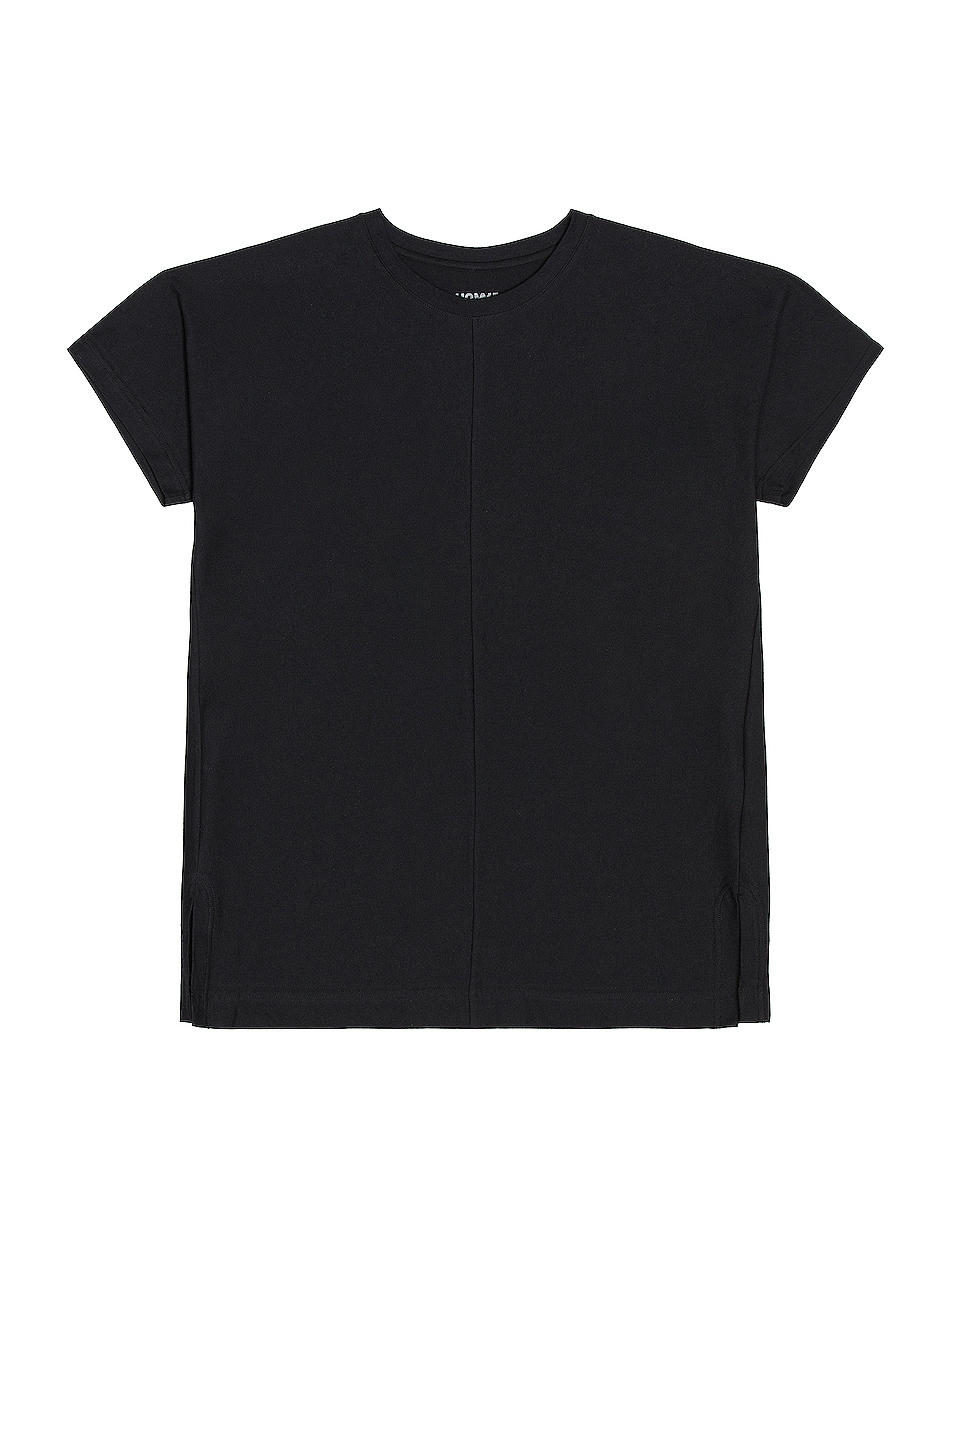 Image 1 of Homme Plisse Issey Miyake Release T-Shirt 1 in Black